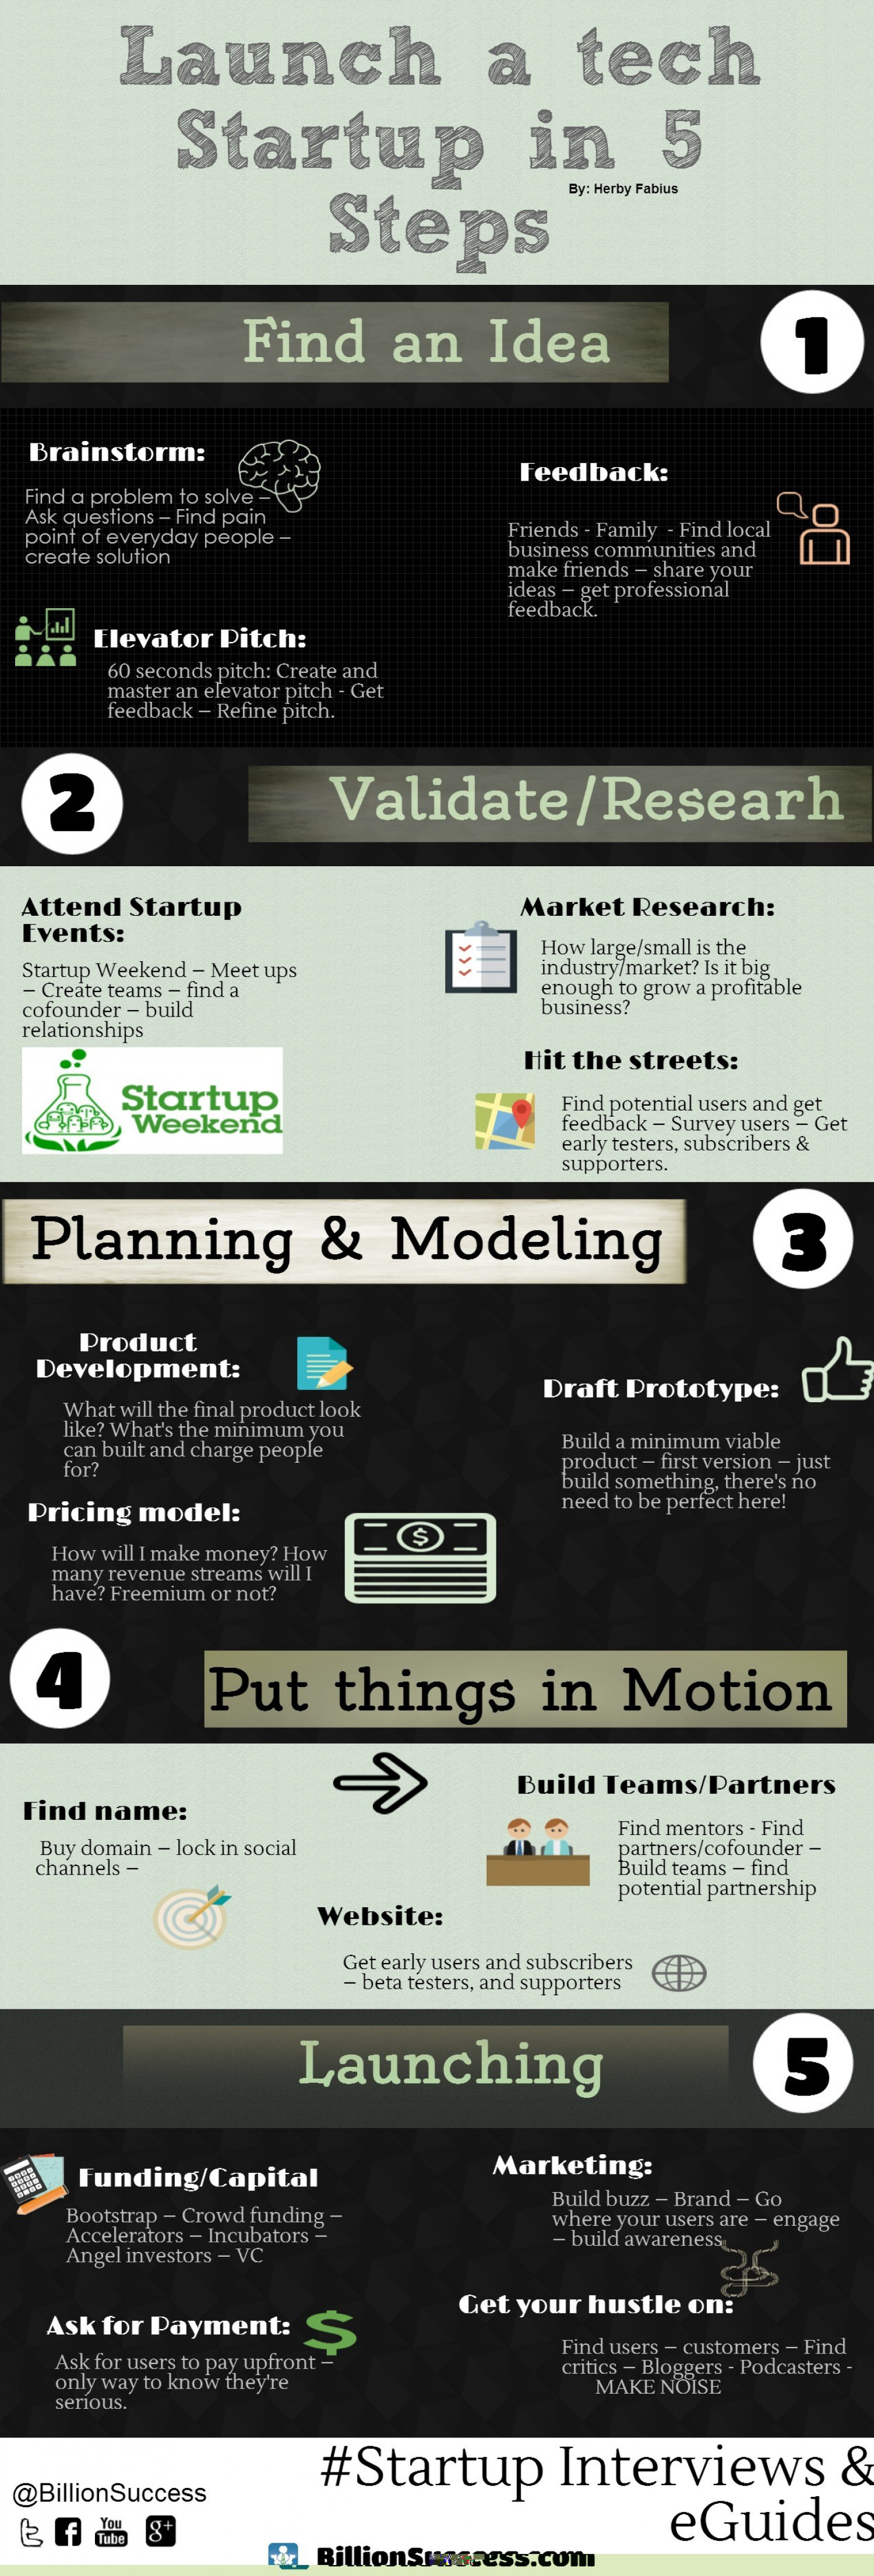 Launch a Tech Startup in 5 Steps Infographic